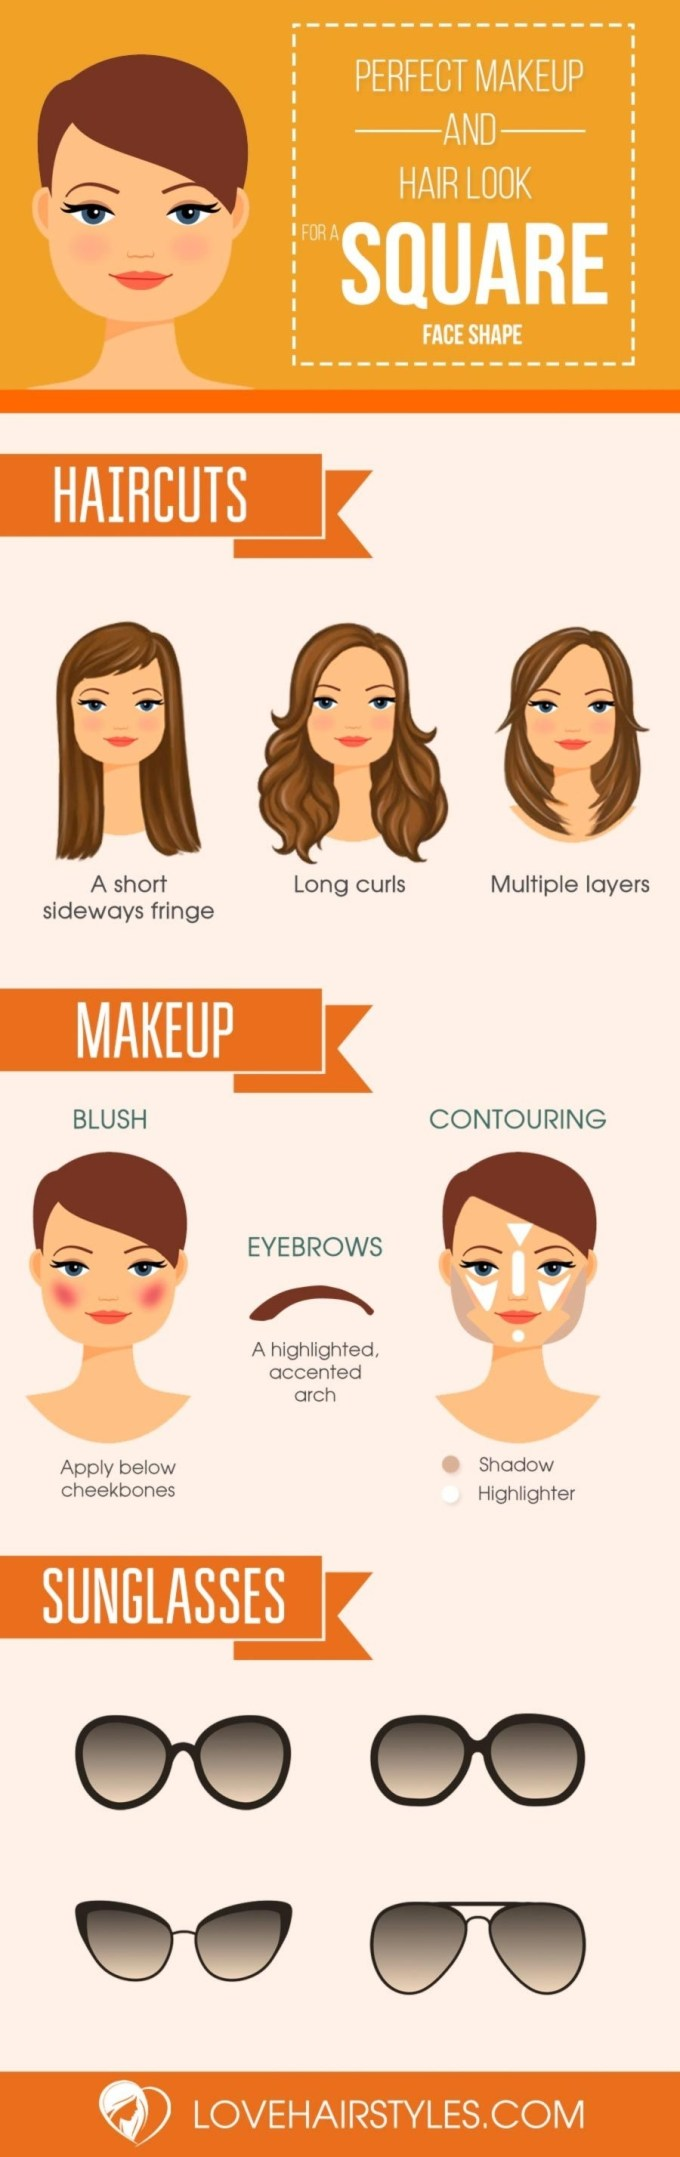 10 Sexy Hairstyles For Square Faces | Makeup | Pinterest | Squares regarding Hairstyle For Square Face Pinterest